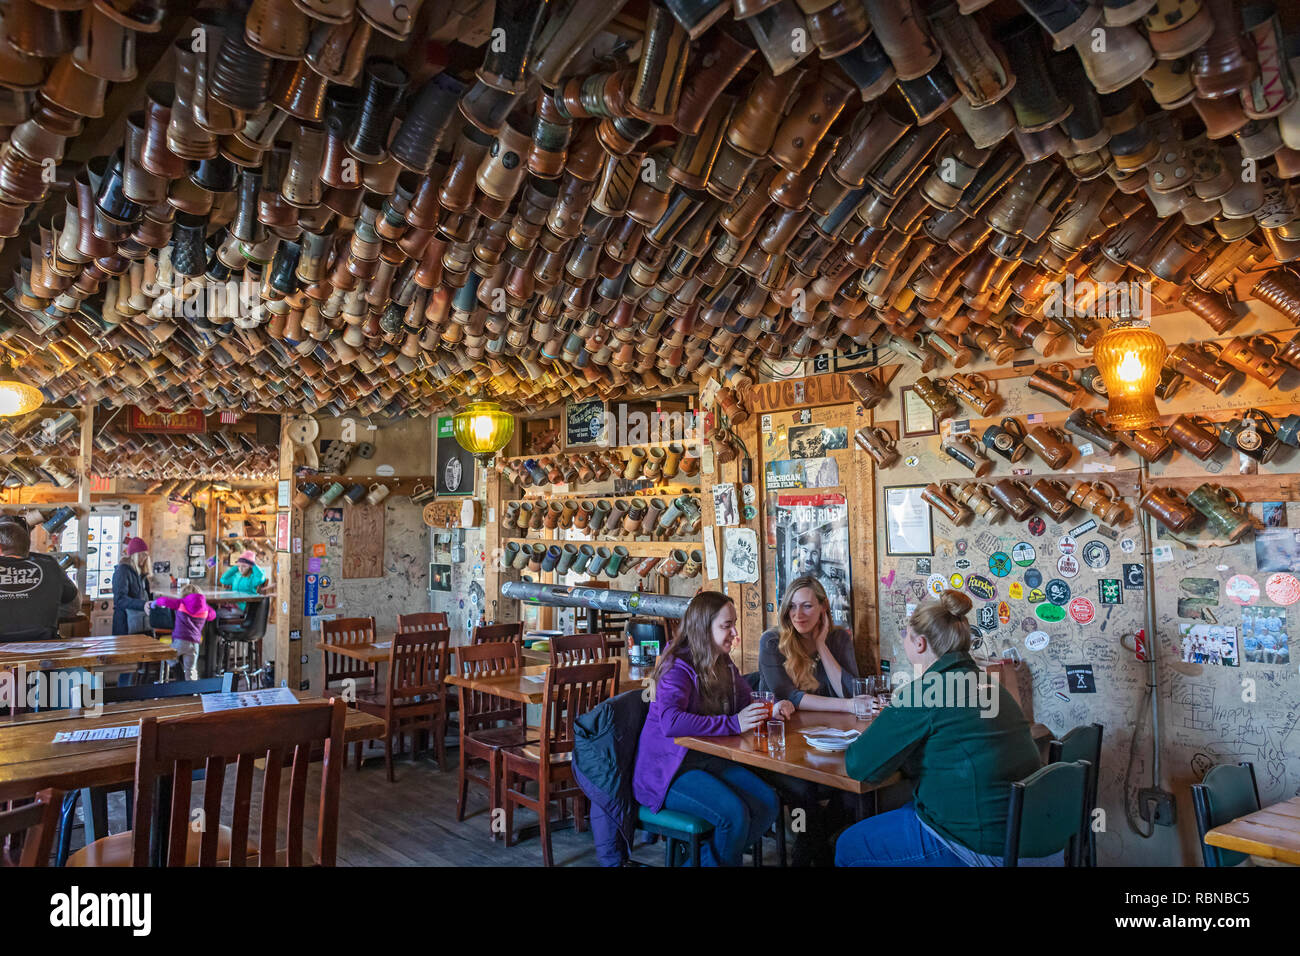 Marshall, Michigan - Thousands of mugs hang from the ceiling and walls of the tap room at the Dark Horse Brewery. Customers buy their own ceramic mugs - Stock Image